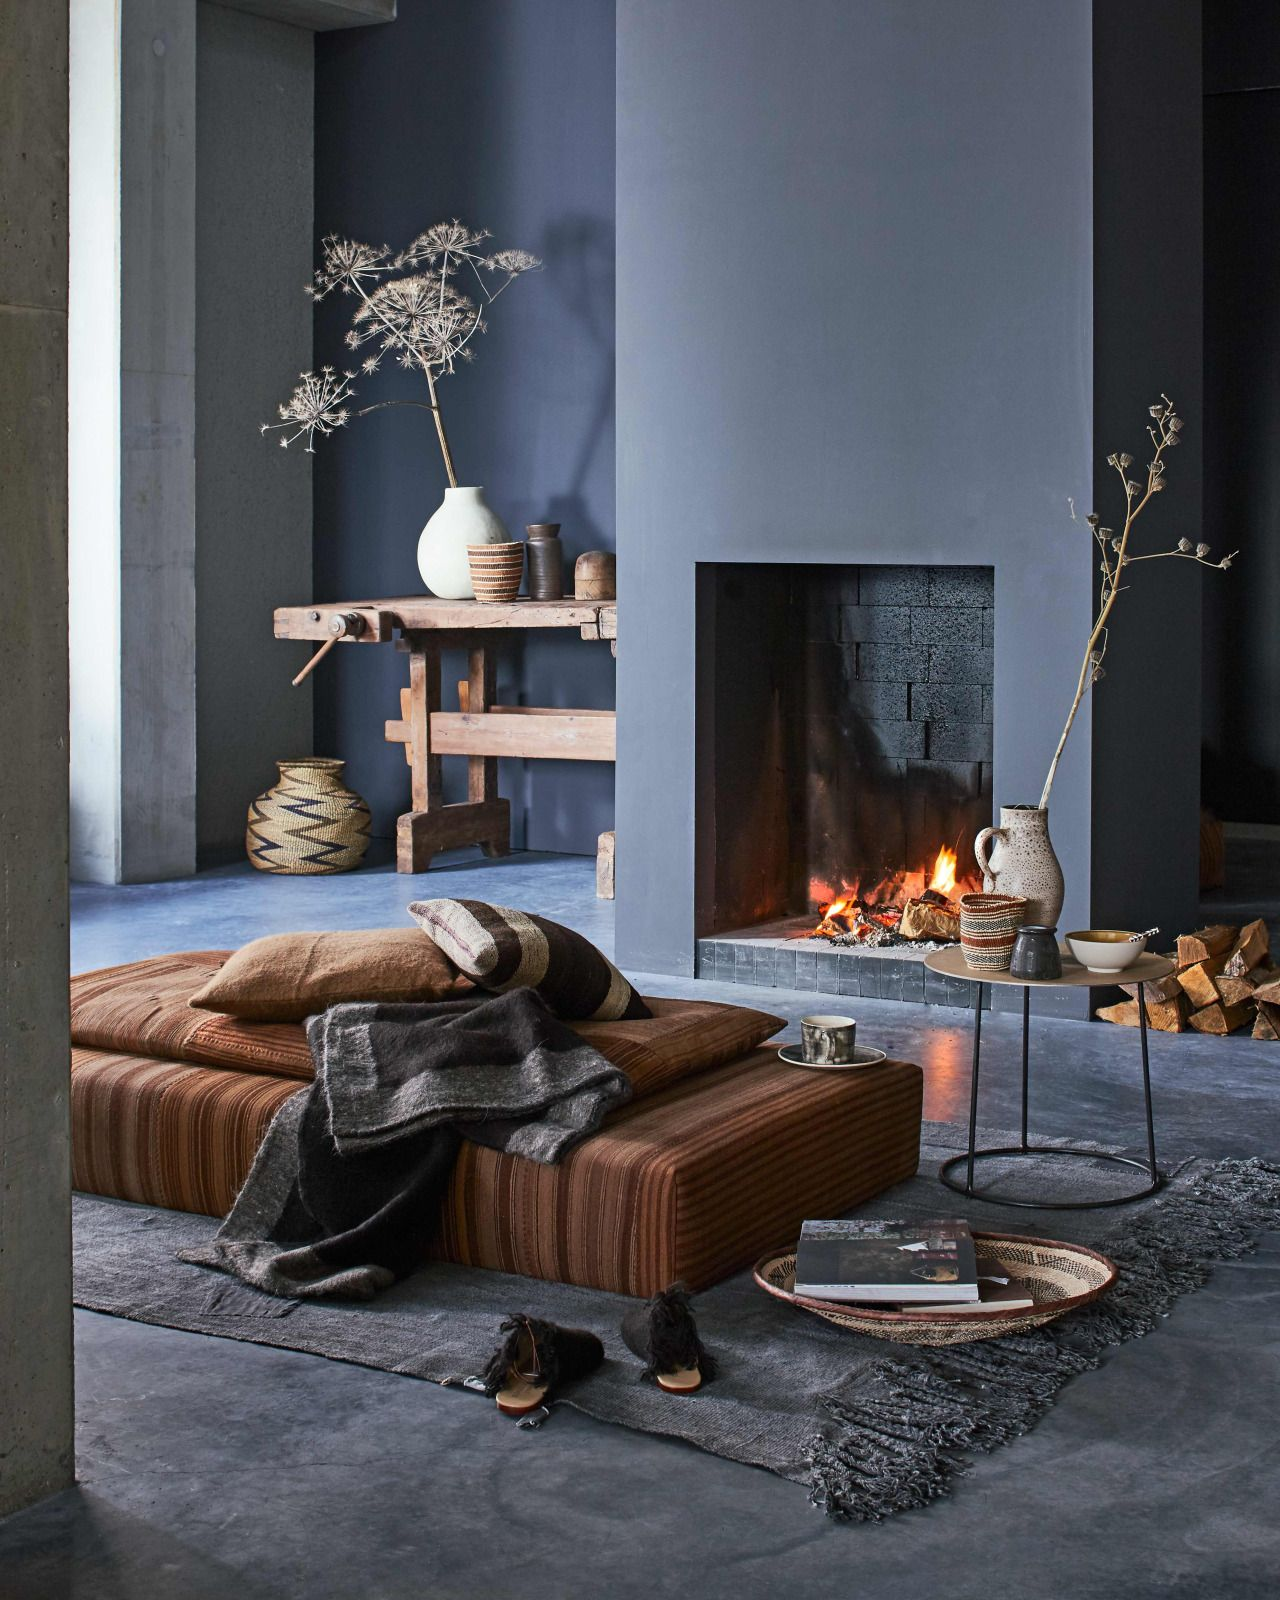 Cozy Living Room Colors: Cozy Living Room In Warm Colors With A Fireplace